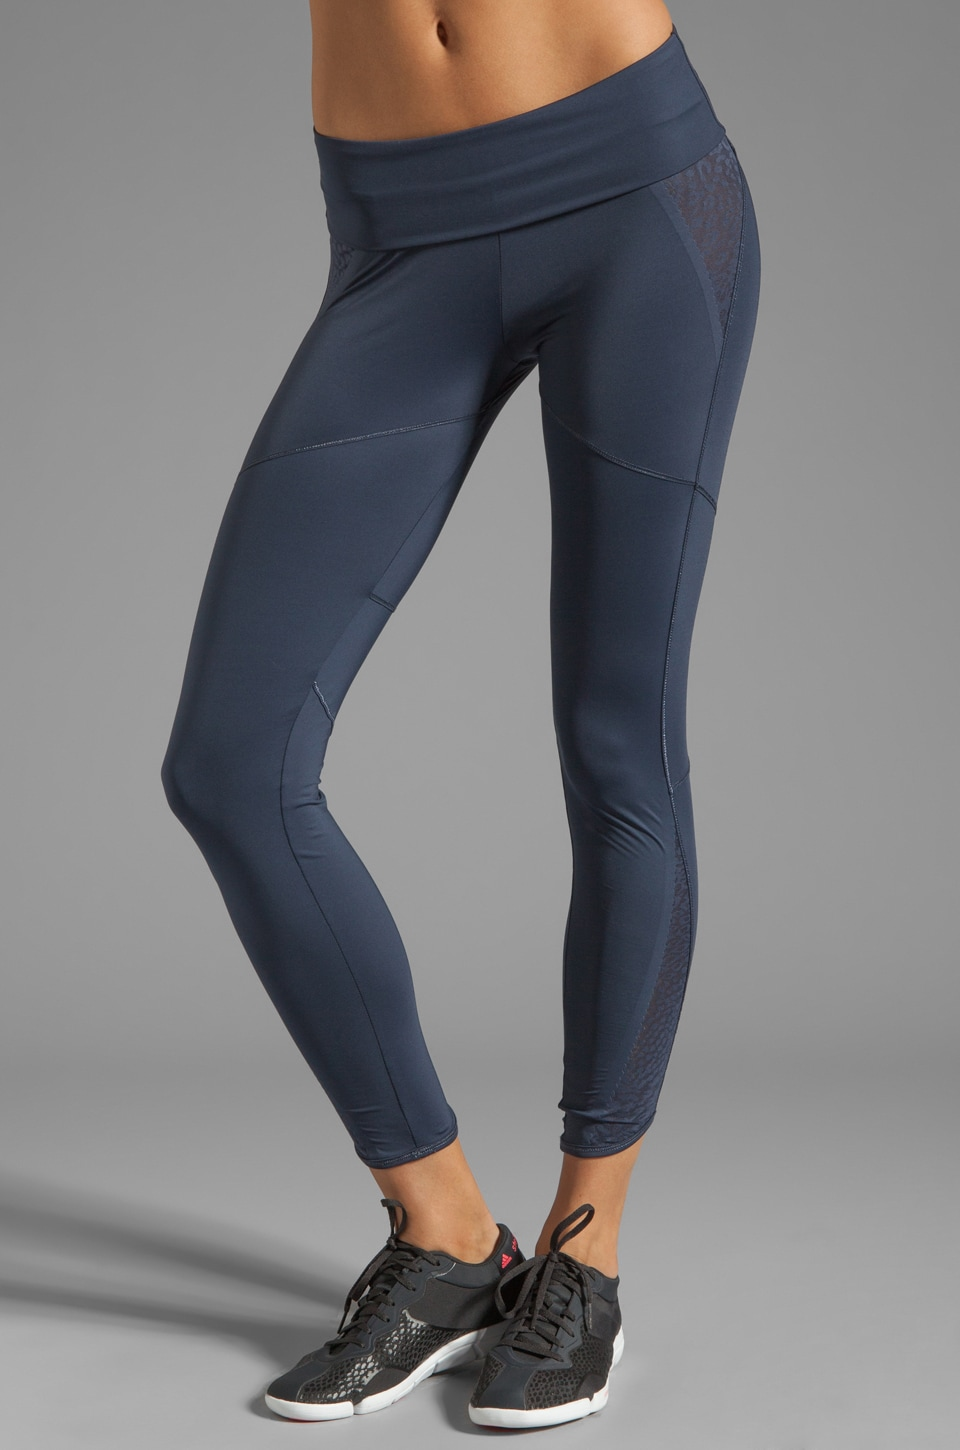 adidas by Stella McCartney Athletic Pant in Urban Sky